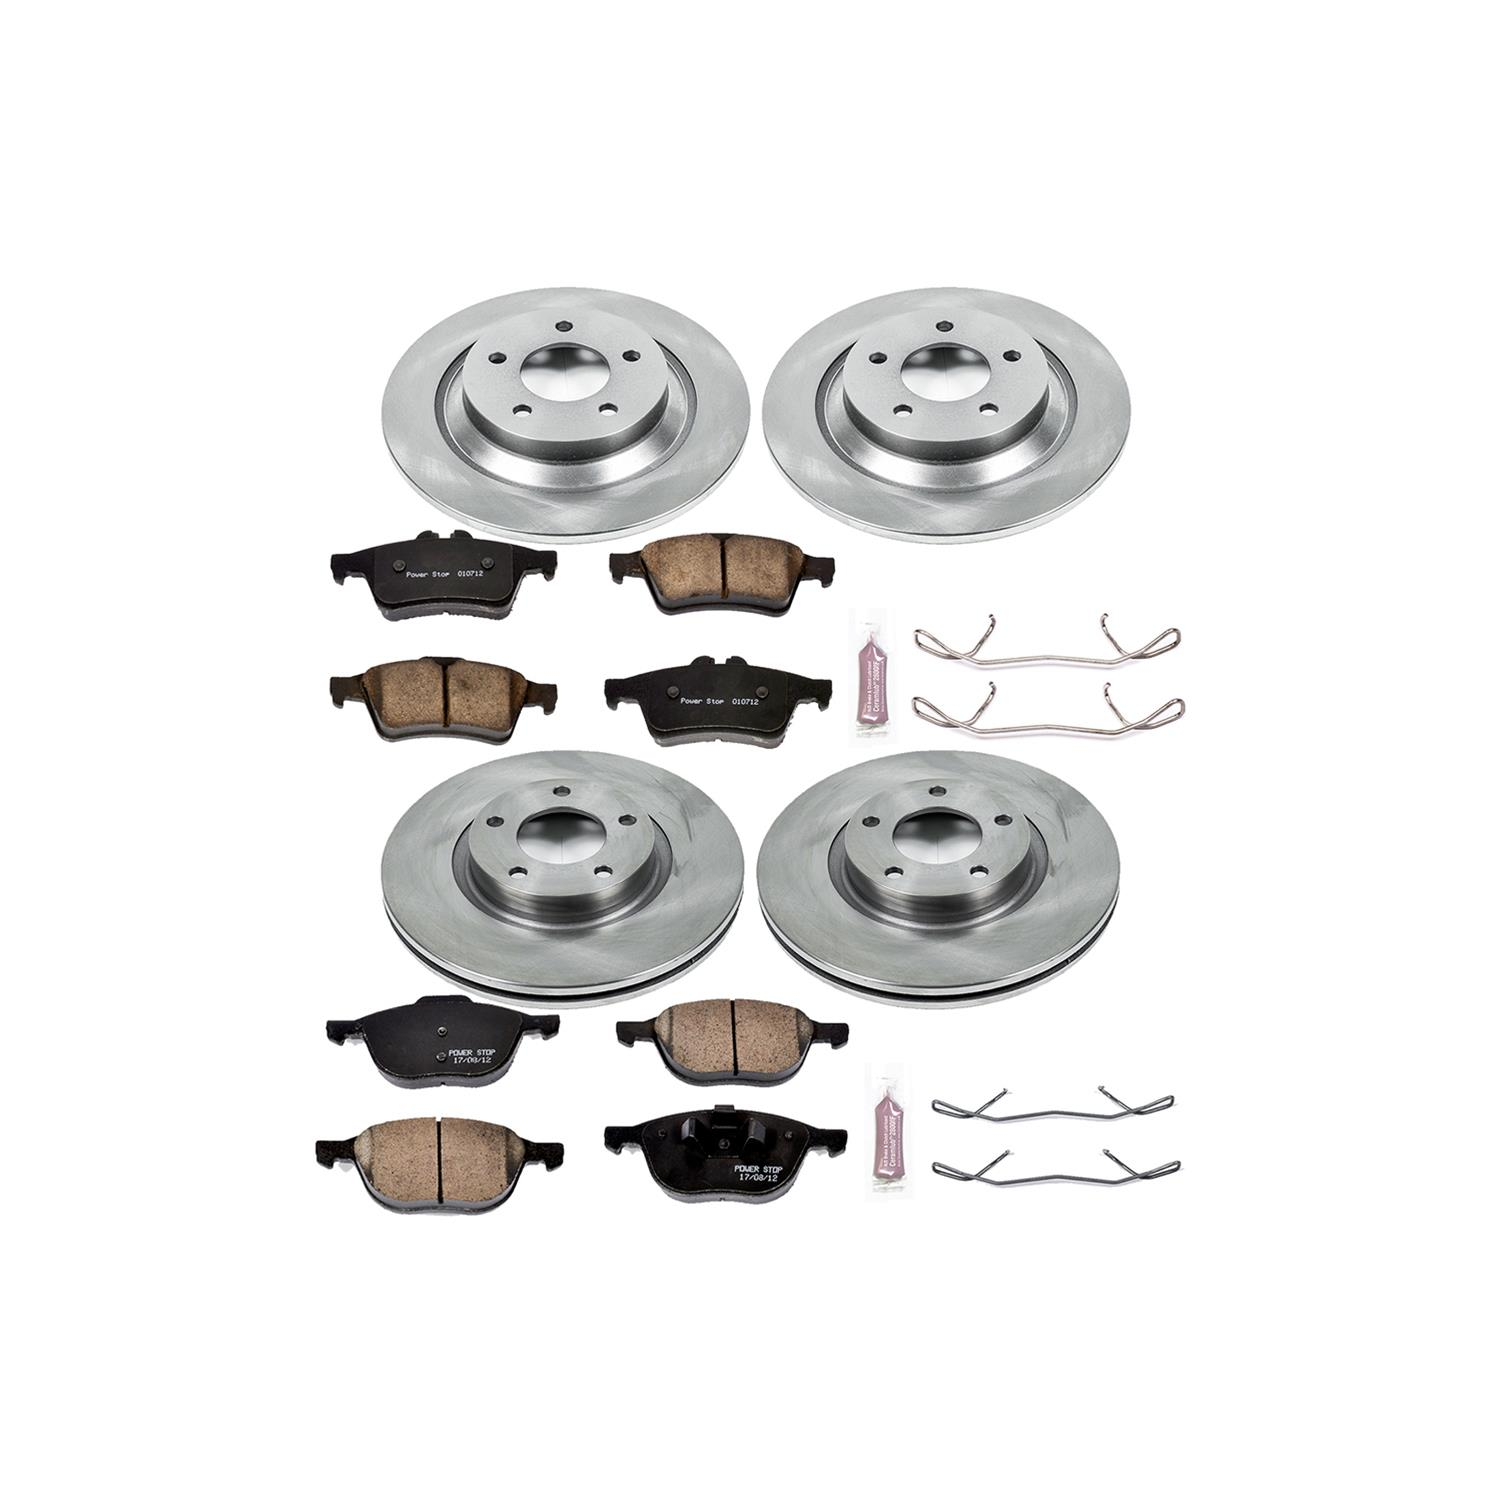 Power Stop KOE7235 Front and Rear Stock Replacement Brake Kit